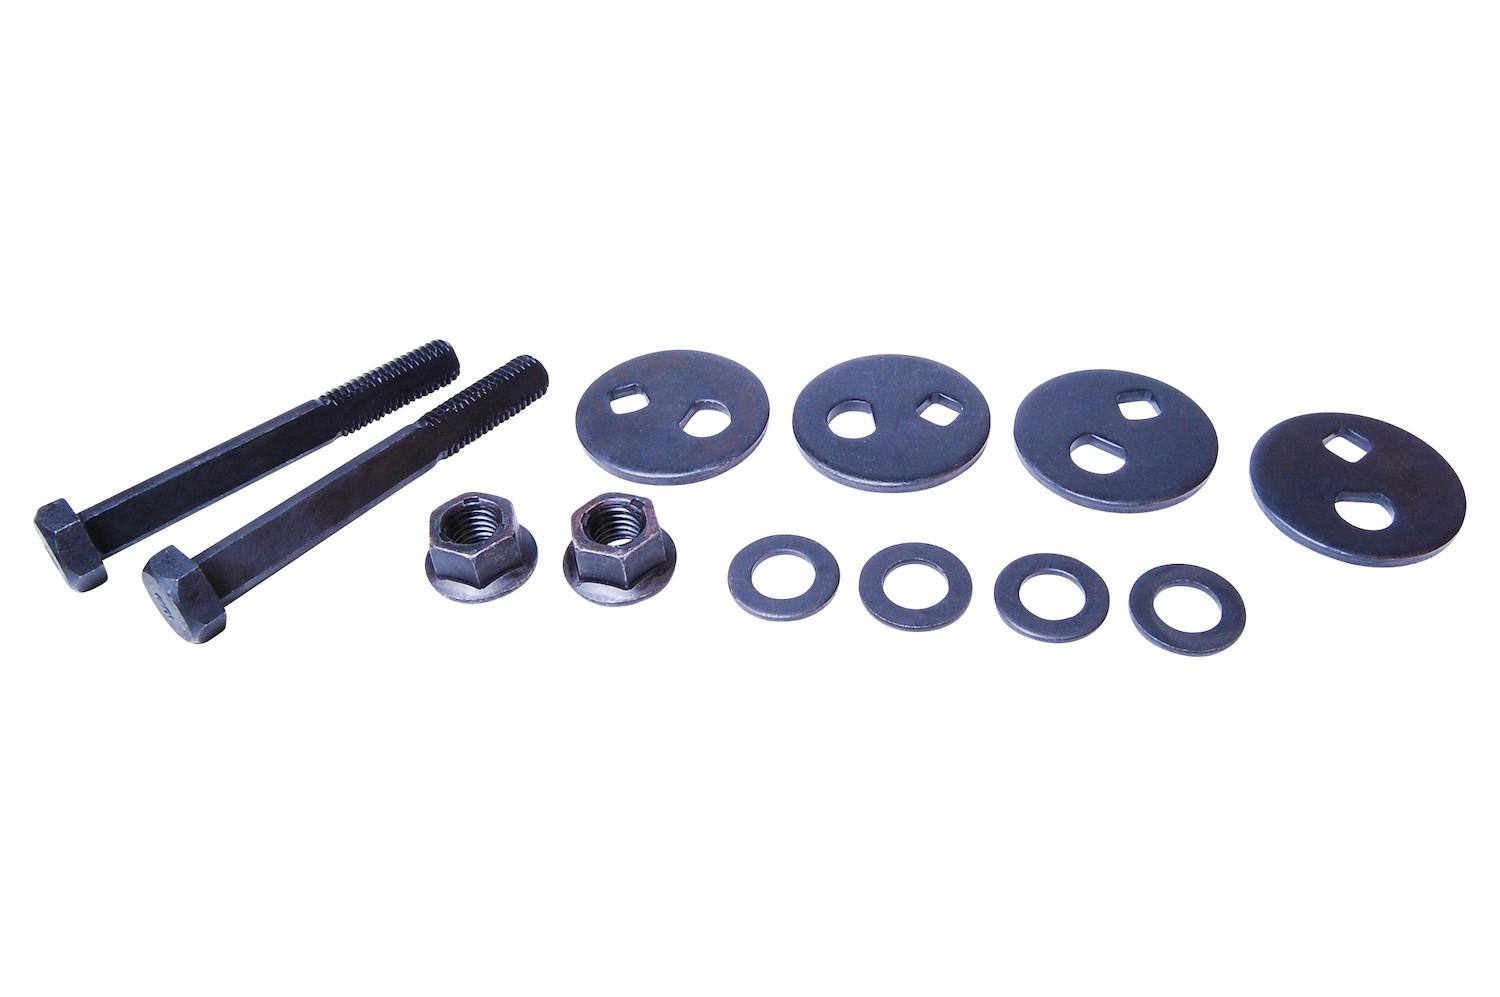 1998 Ford Ranger Alignment Caster / Camber Kit